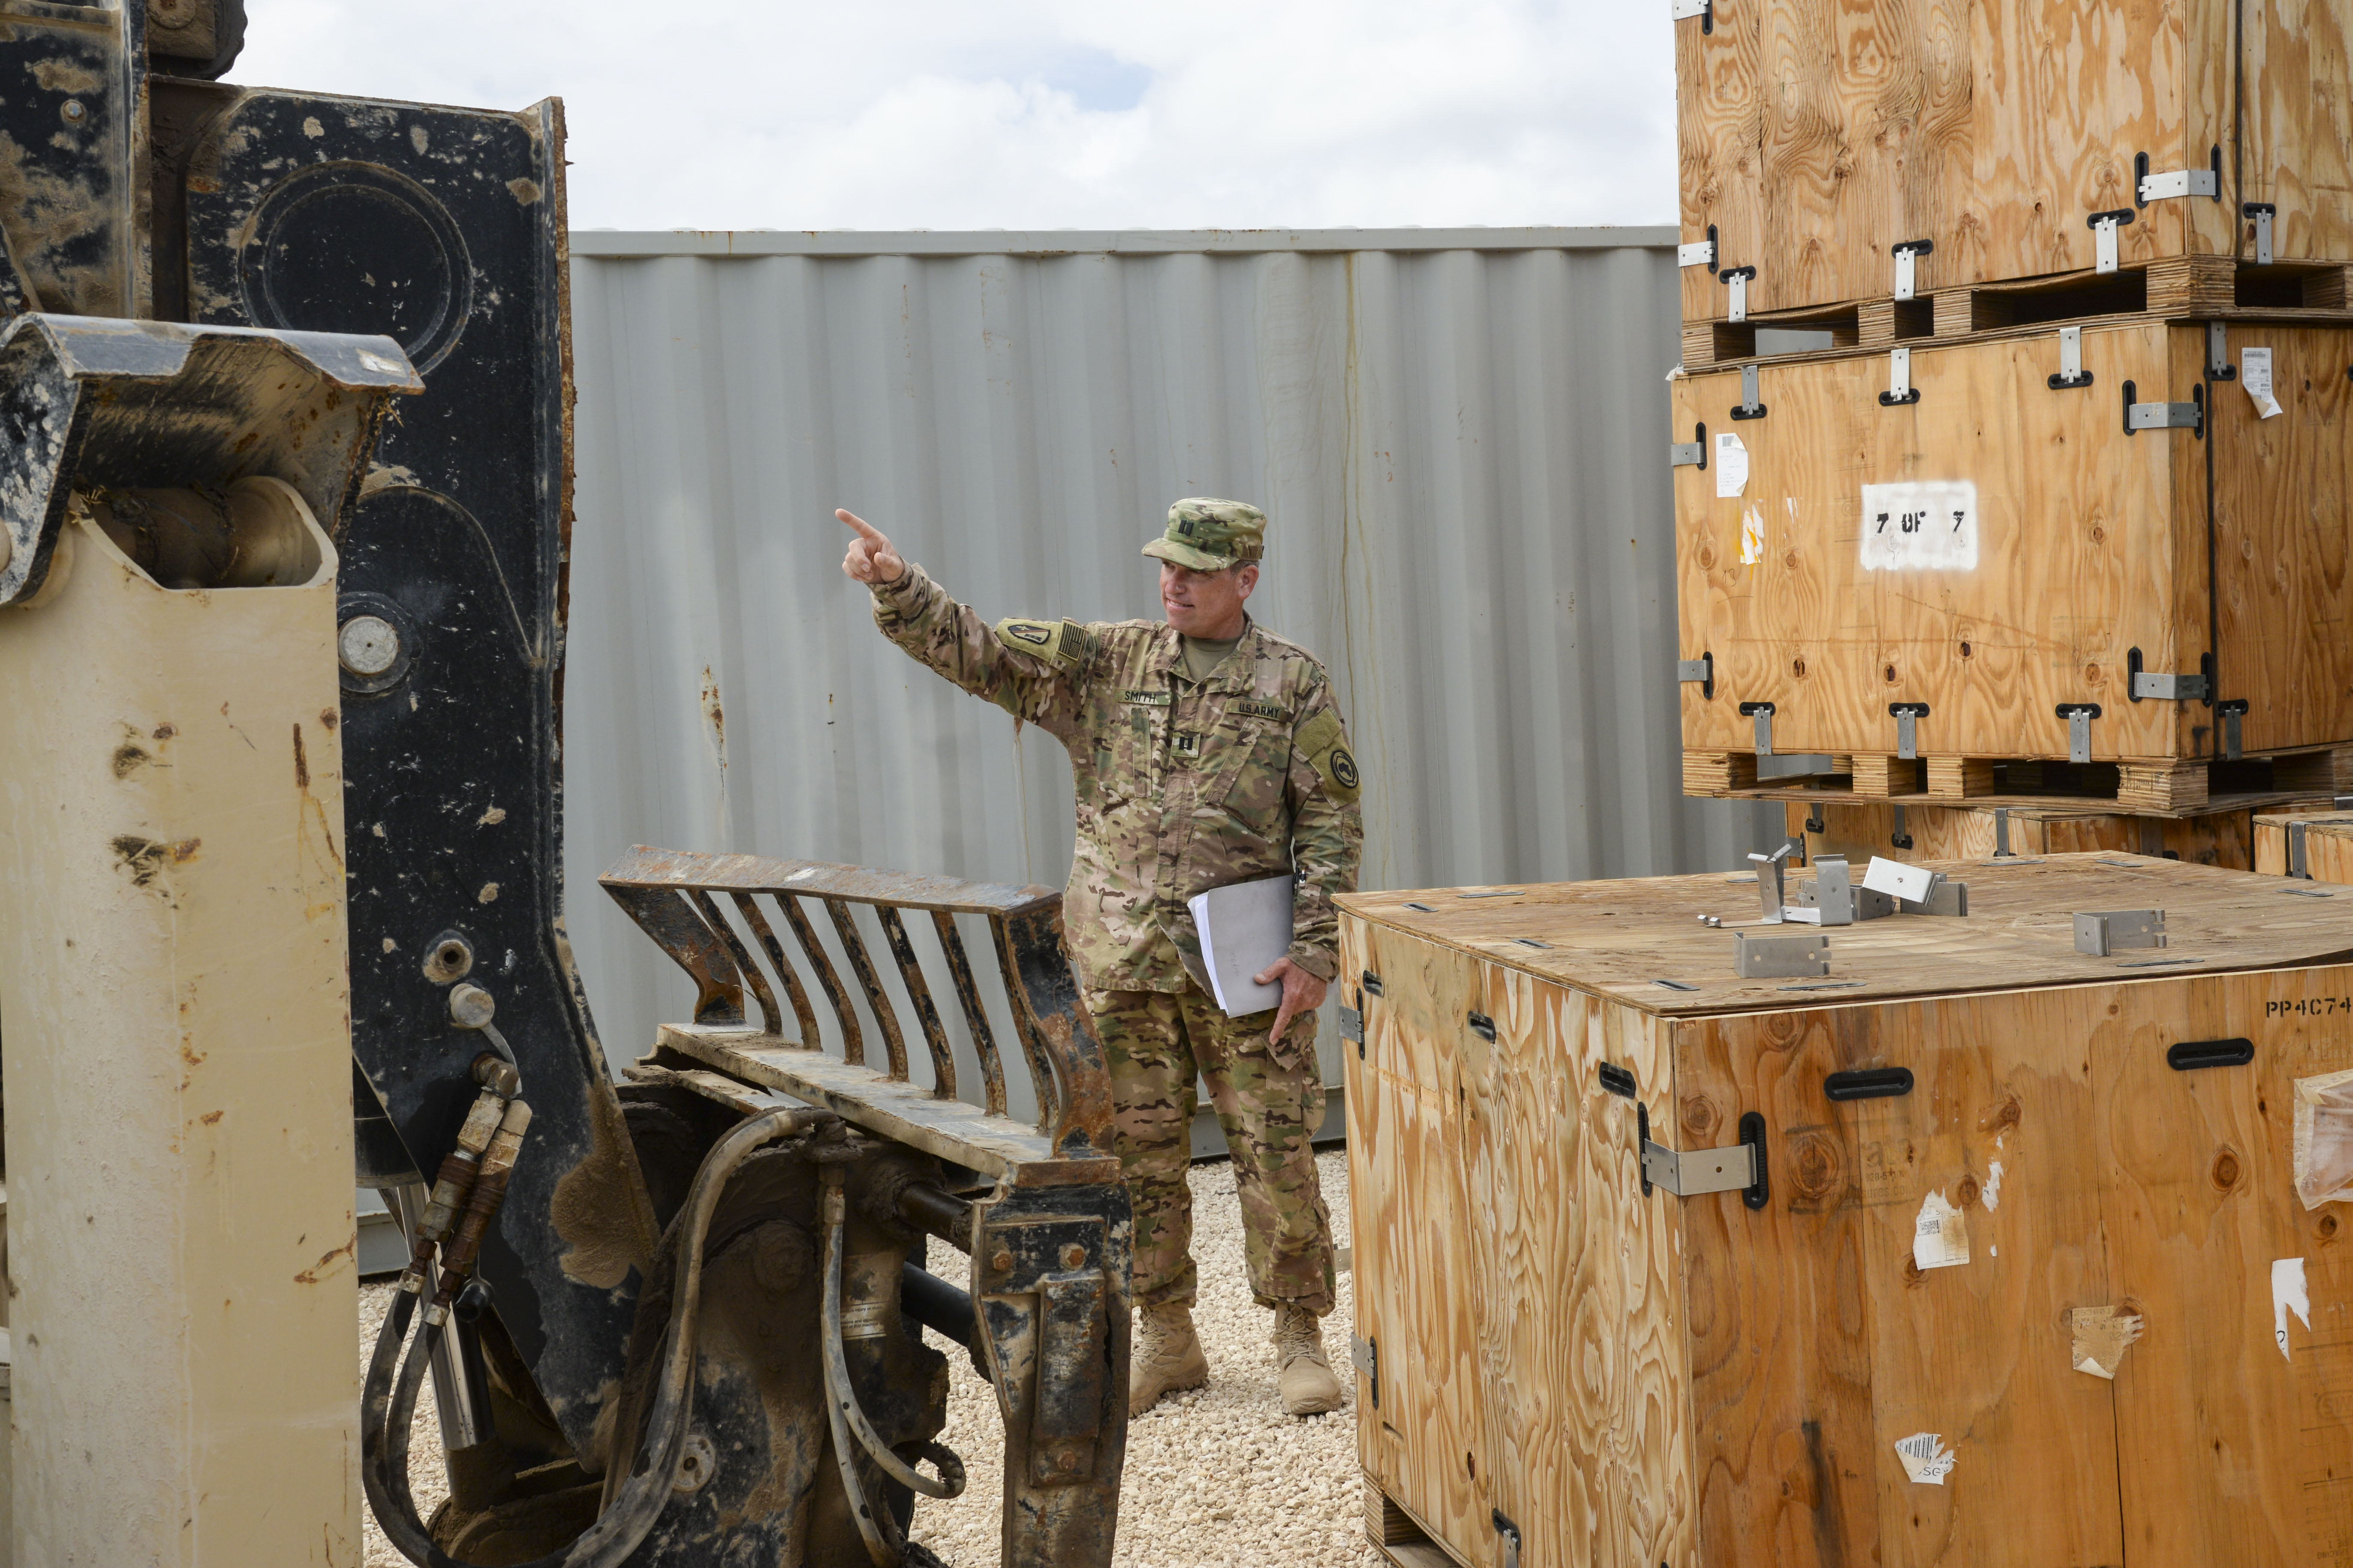 U.S. Army Capt. Mike Smith, Combined Joint Task Force- Horn of Africa Military Coordination Cell logistics representative, guides a forklift to pick up crates of tires in Mogadishu, Somalia, Sept. 12, 2016. Both African Union Mission in Somalia members and U.S. forces worked together to get all supplies stored in containers for use in dry locations, as weathering and rain can damage supplies exposed to the elements. (U.S. Air Force photo by Staff Sgt. Benjamin Raughton)